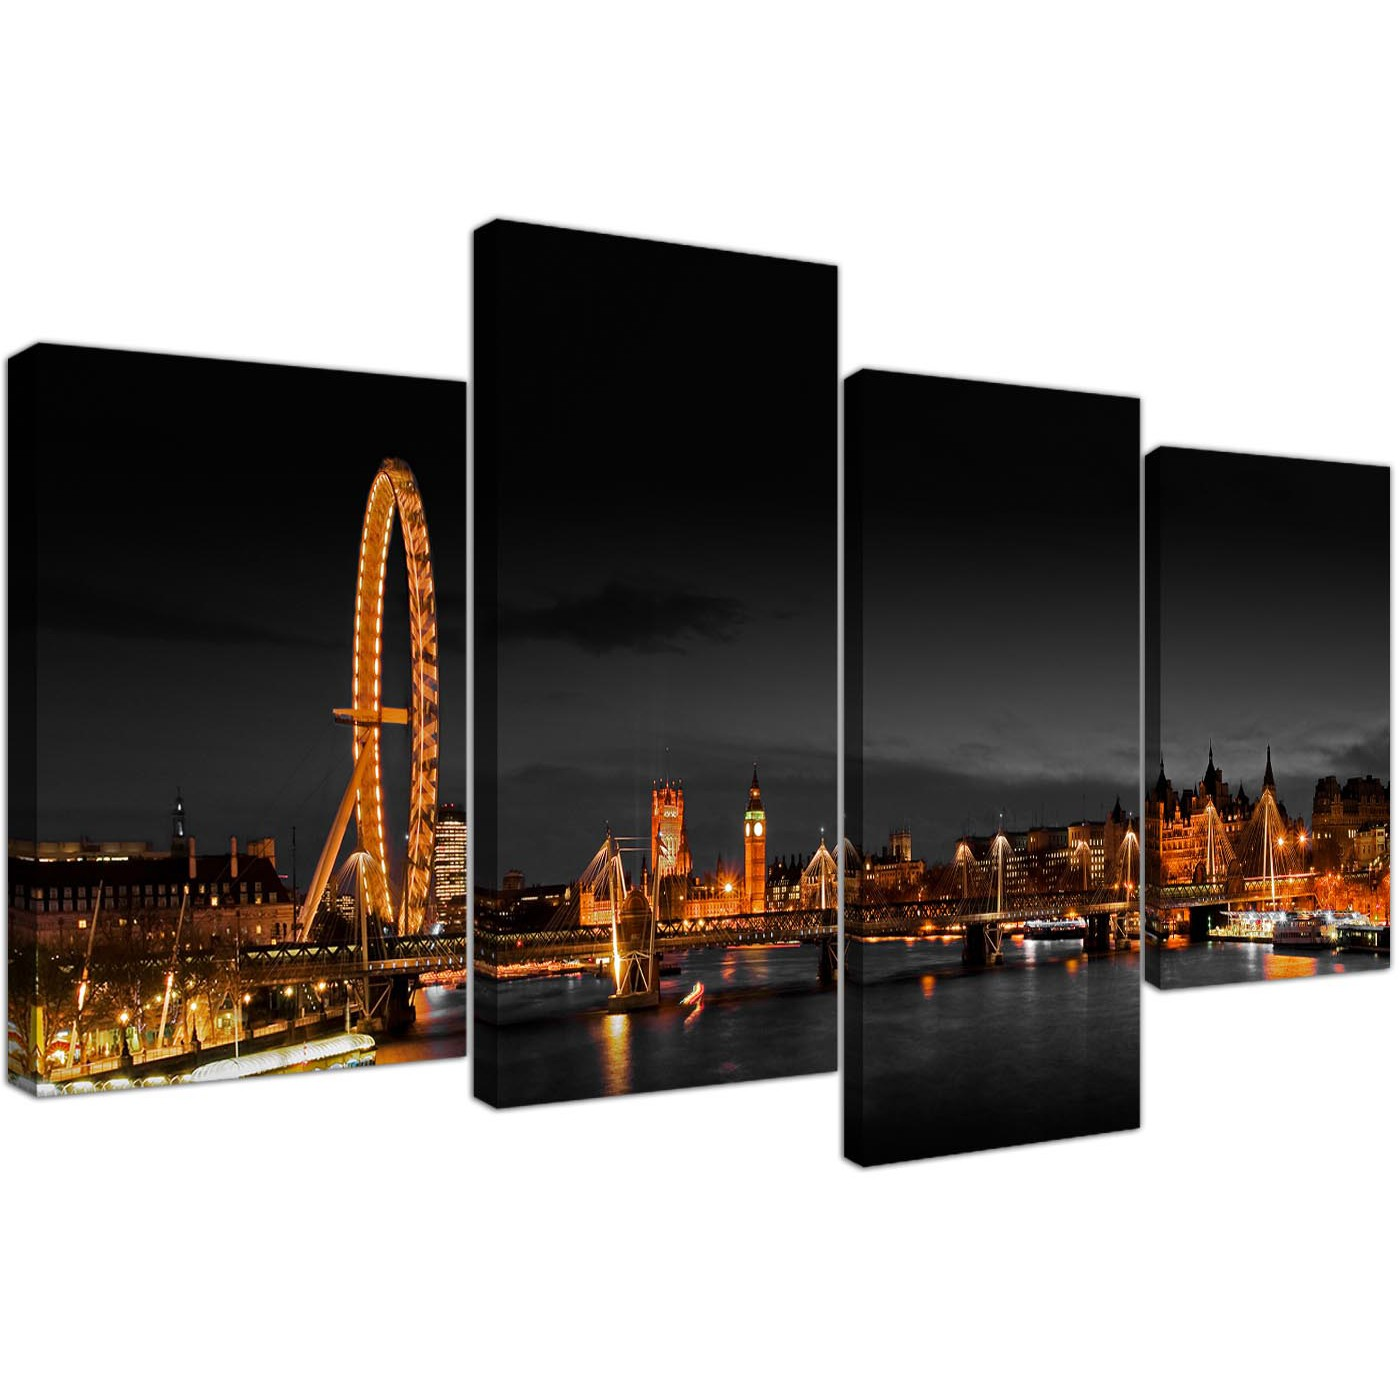 Large Canvas Art Office Landscape London Scene 130cm X 67cm 4186 Display  Gallery Item 1 ...